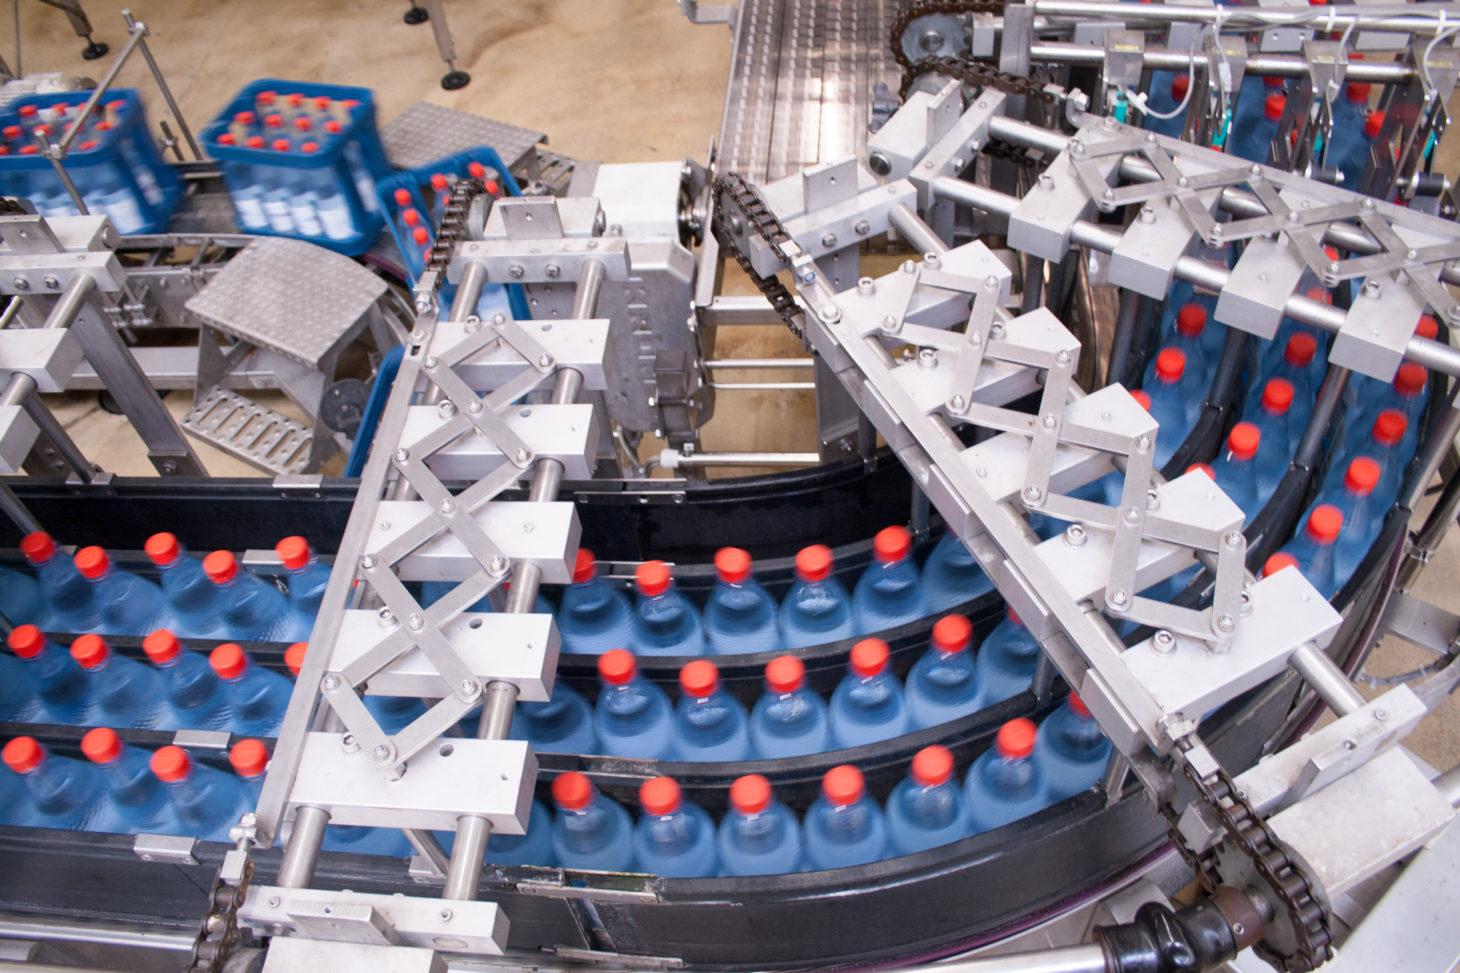 Beverage Producer Winkels Perfects Its Production And Logistics Processes With SAP; valantic Case Study